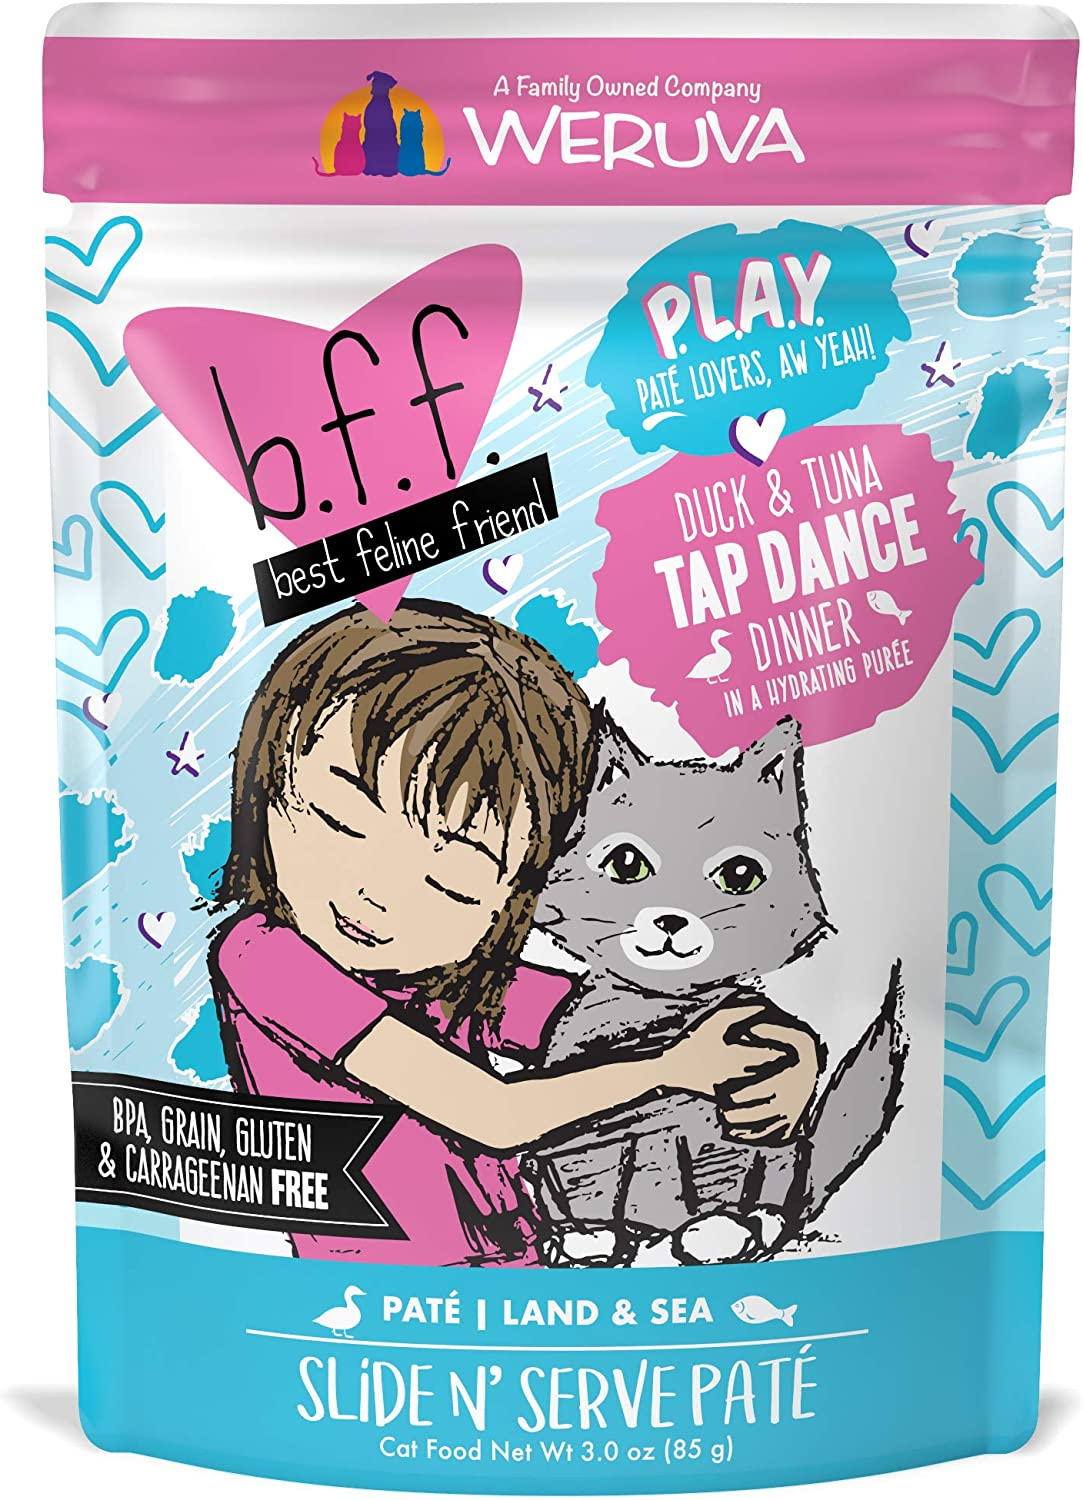 B.F.F. PLAY - Best Feline Friend Paté Lovers, Aw Yeah!, Duck & Tuna Tap Dance with Duck & Tuna, 3oz Pouch (Pack of 12)